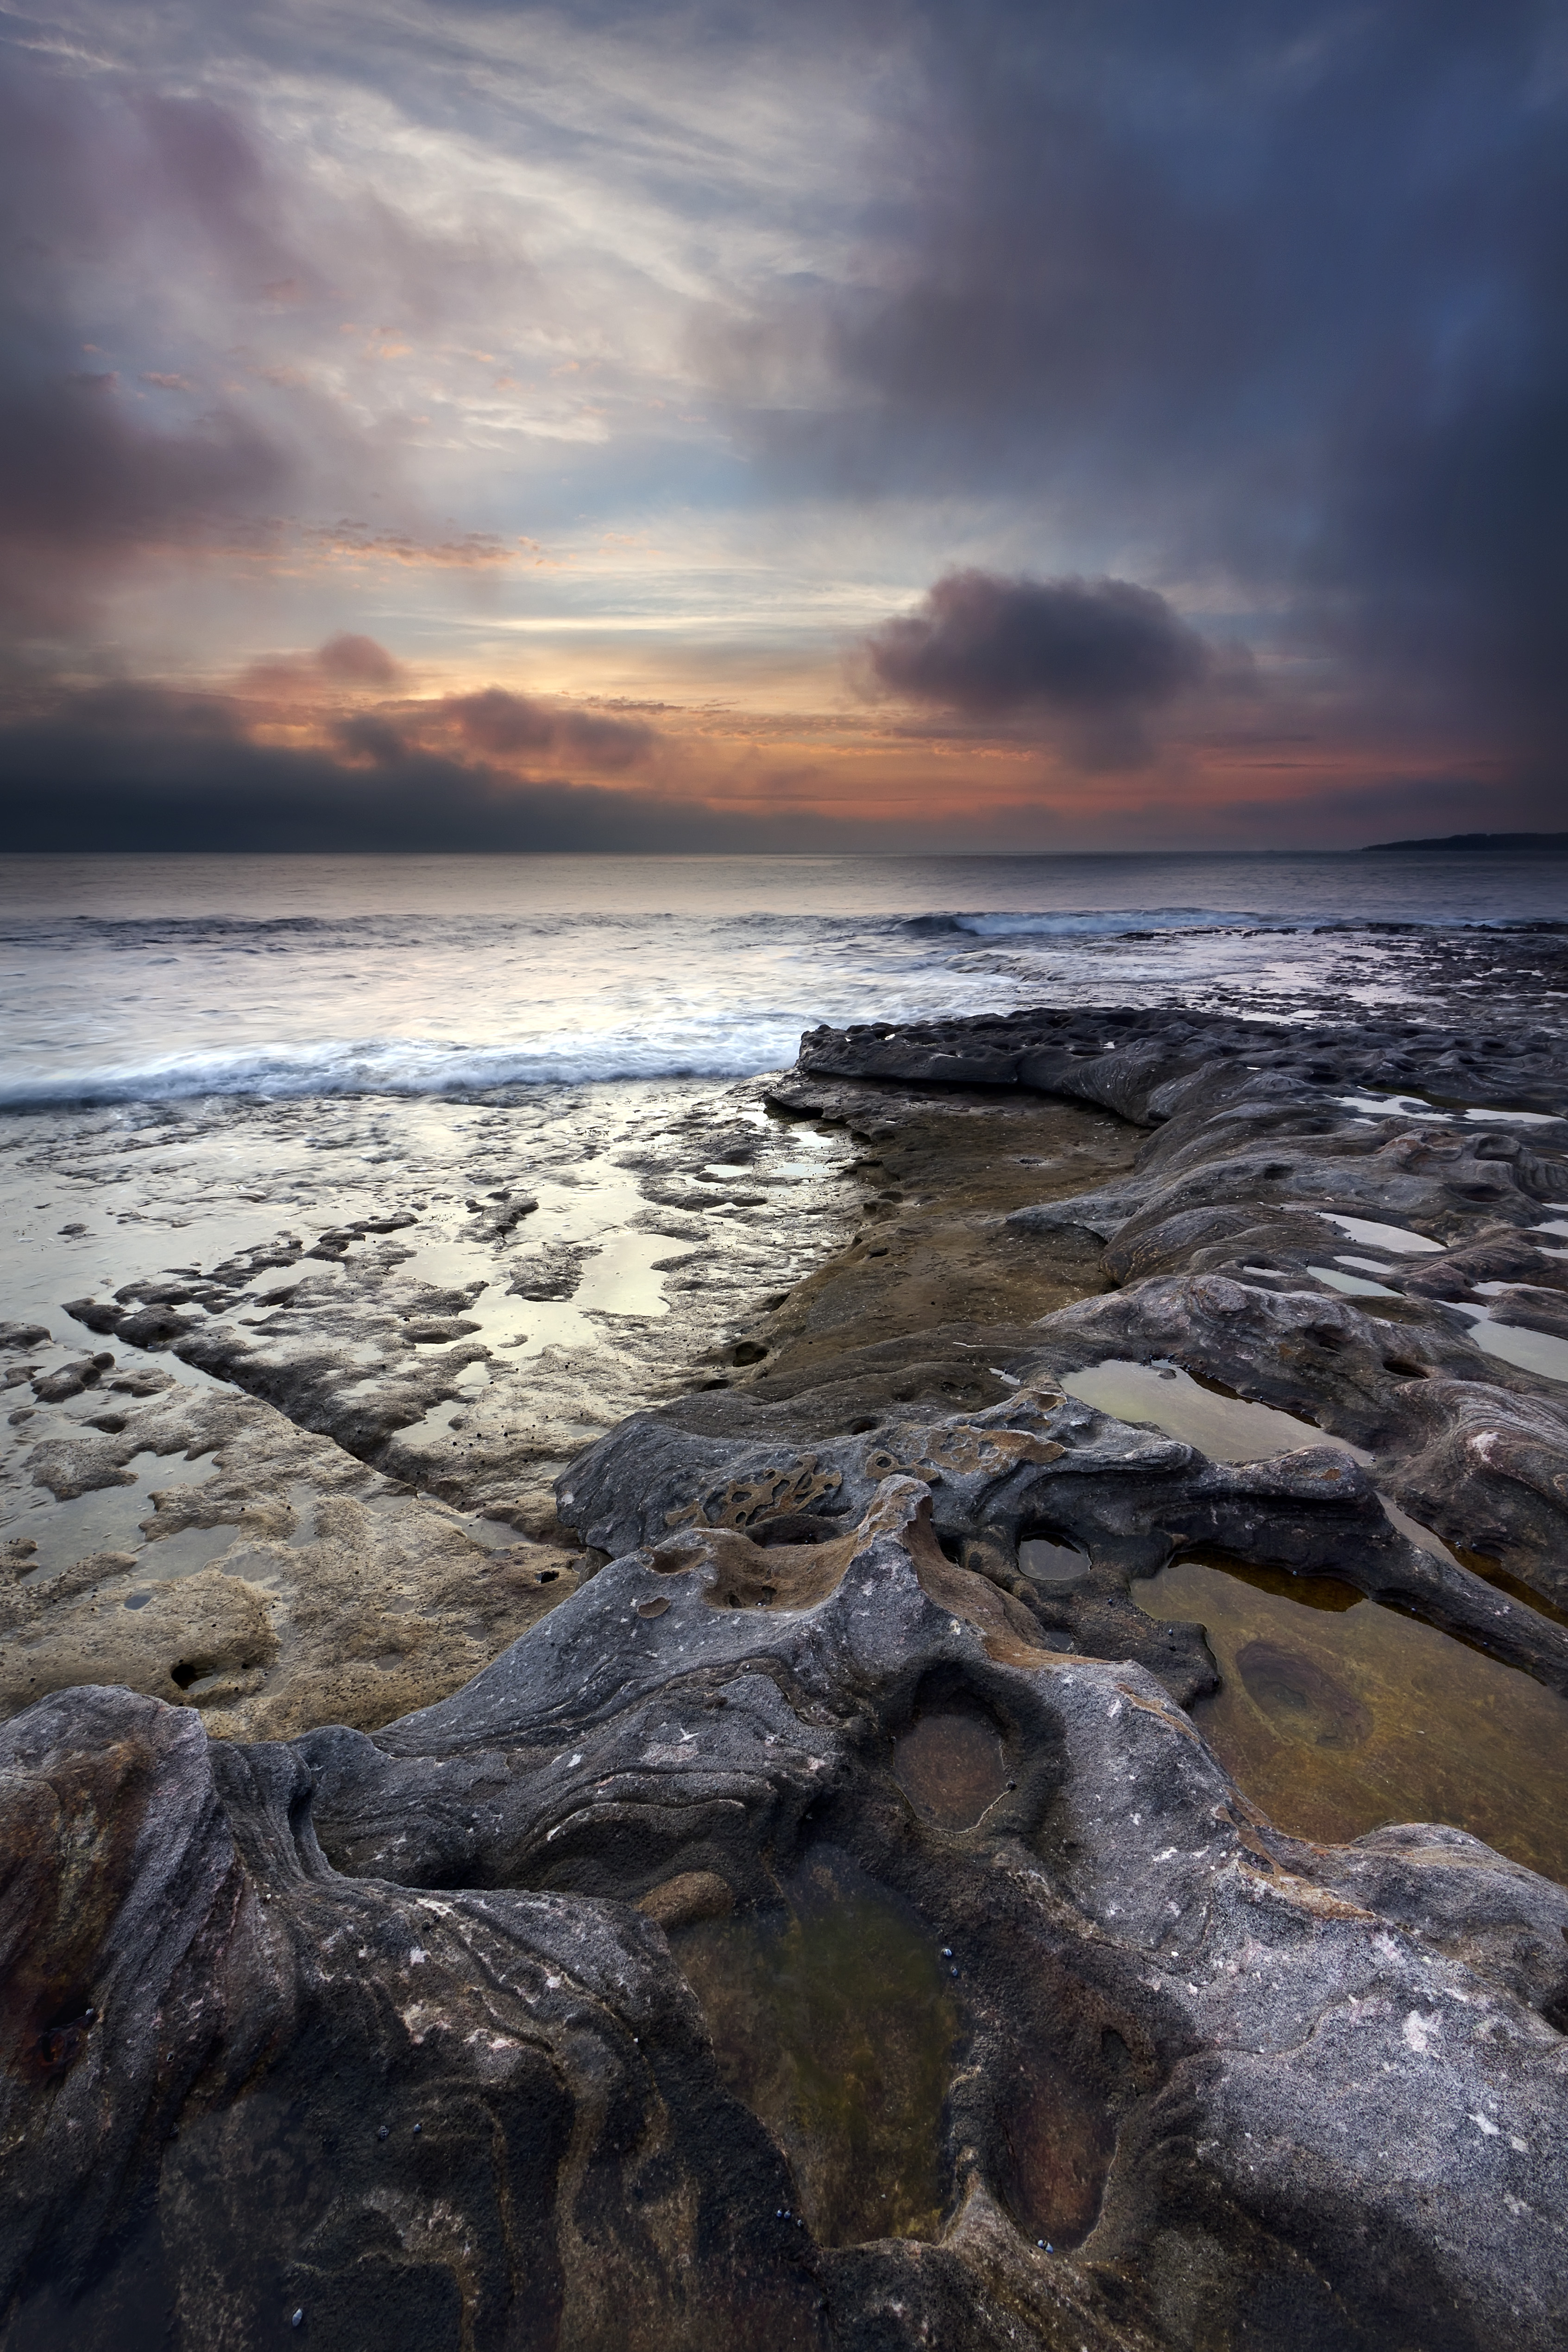 129401 download wallpaper Nature, Stones, Coast, Sea, Sky, Waves screensavers and pictures for free